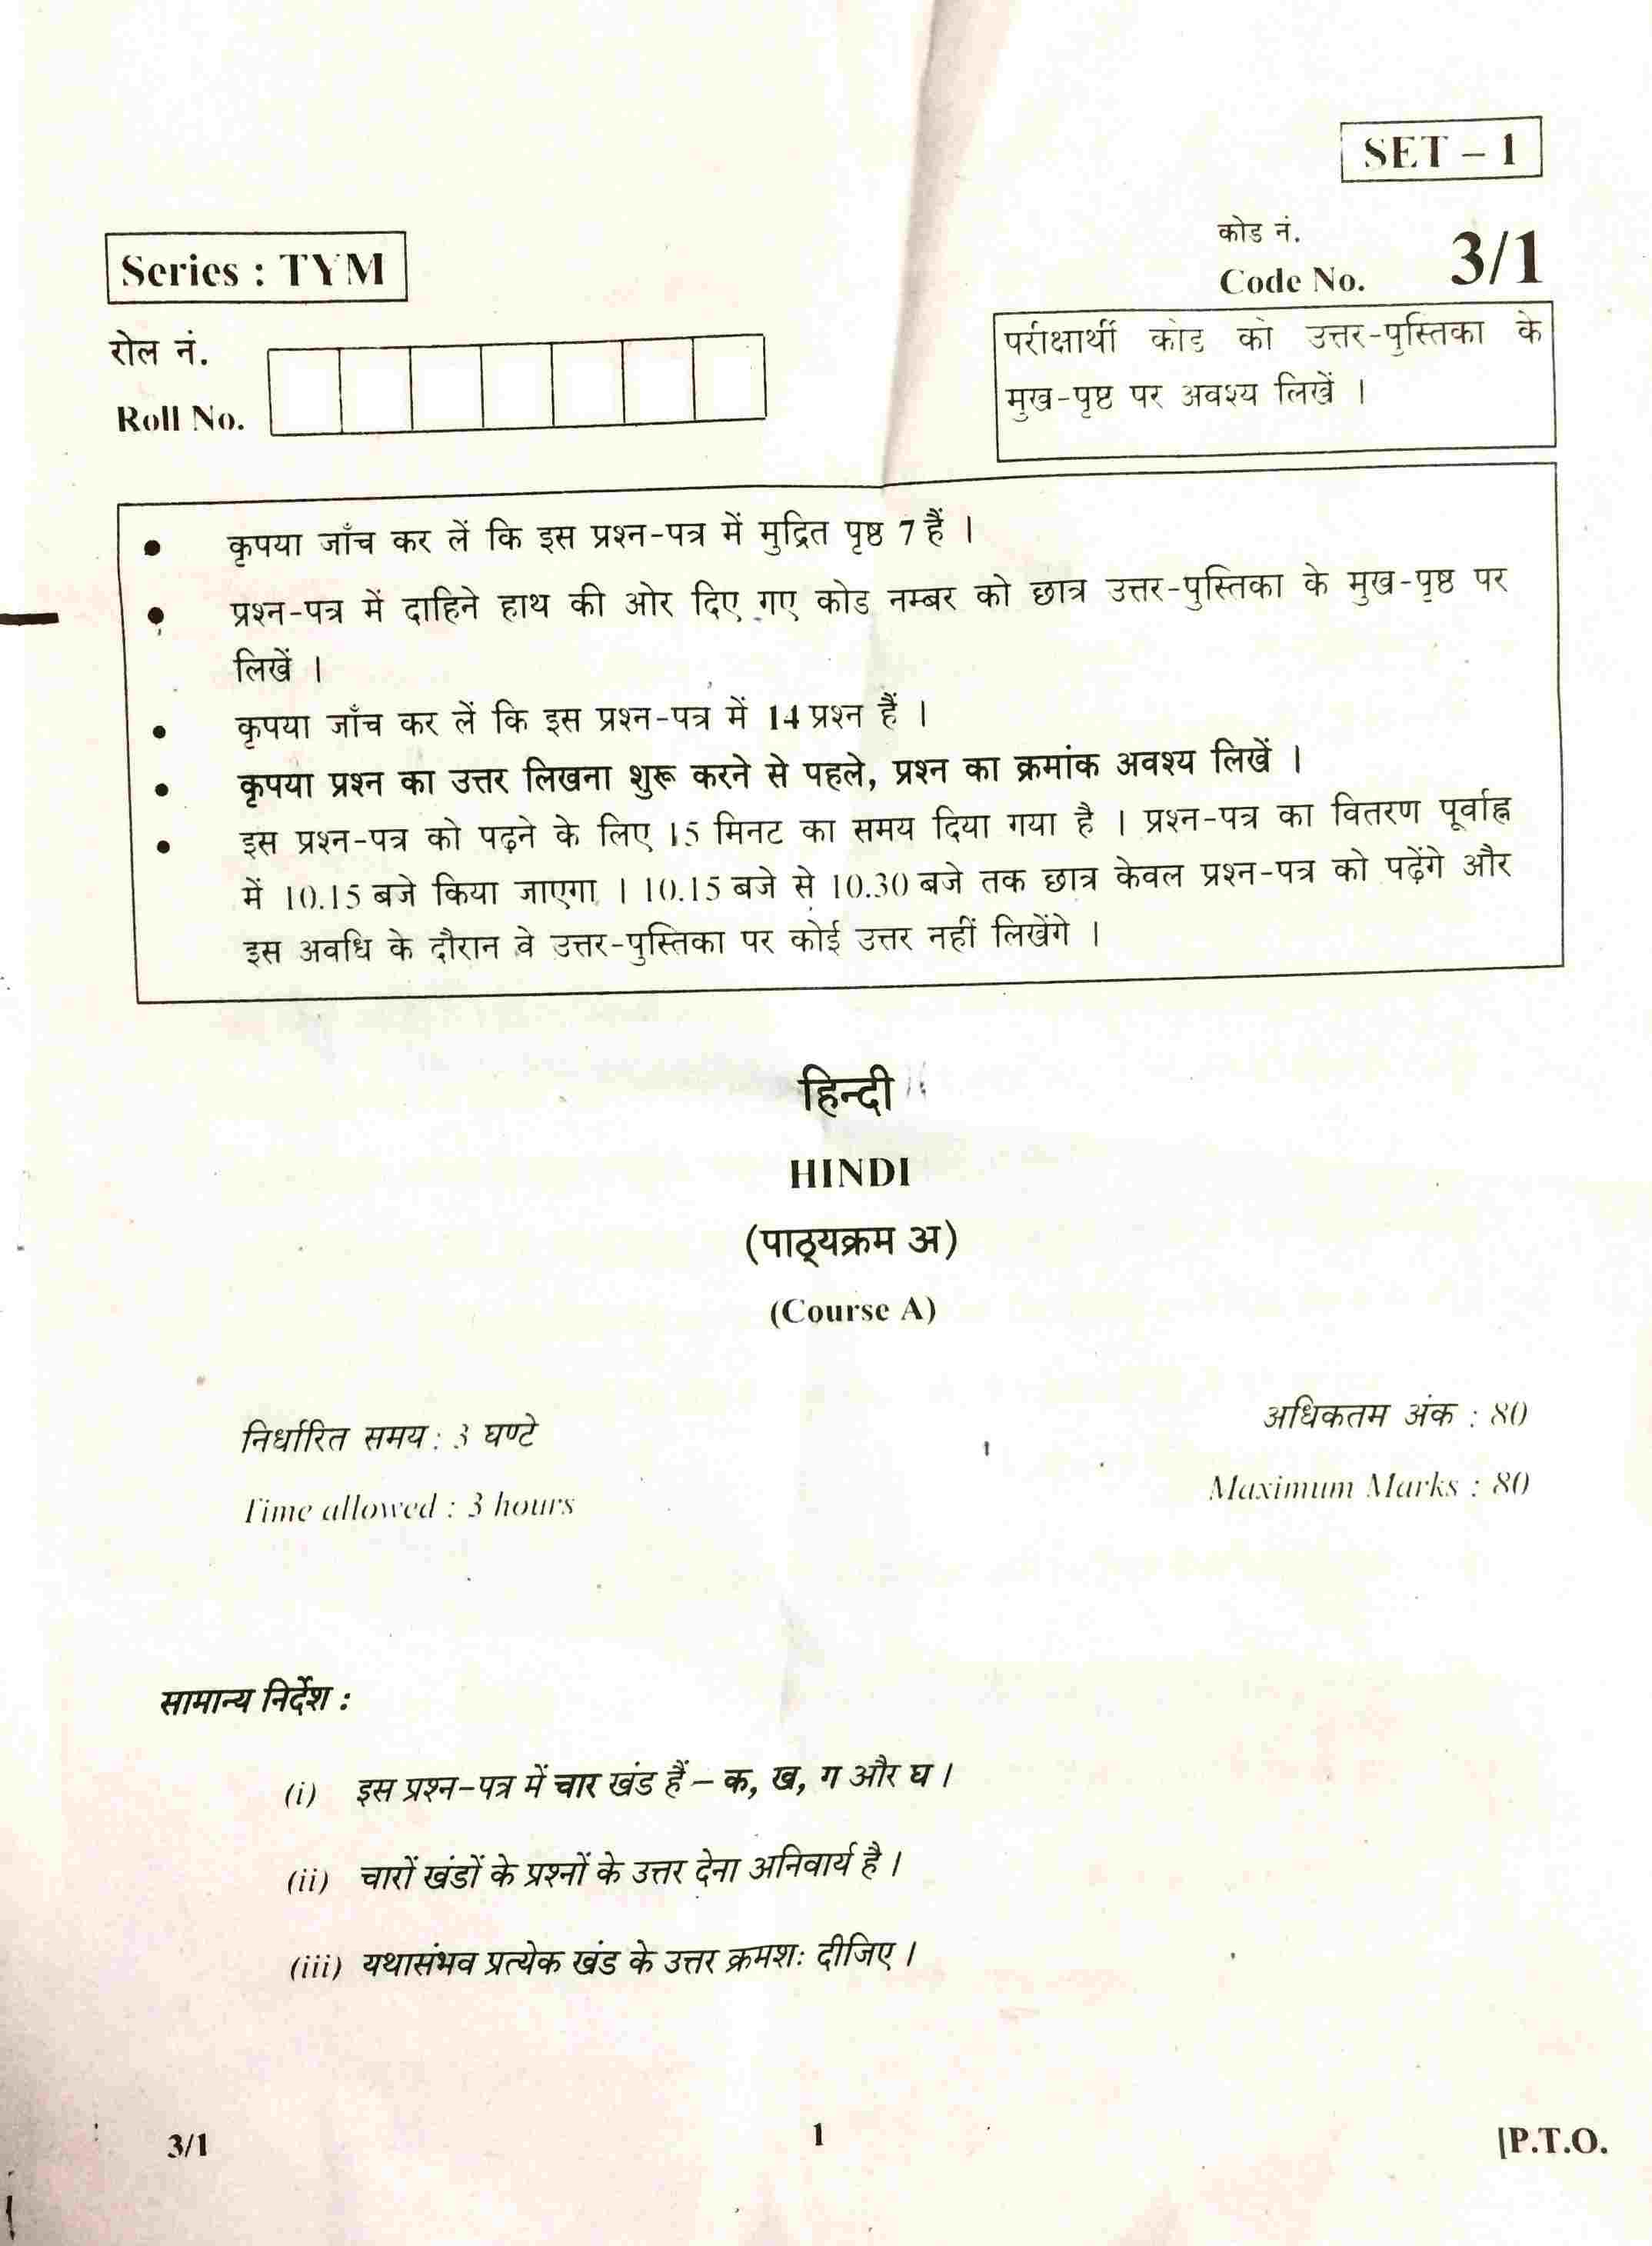 Download Cbse Class 10 Hindi Course A Question Paper In